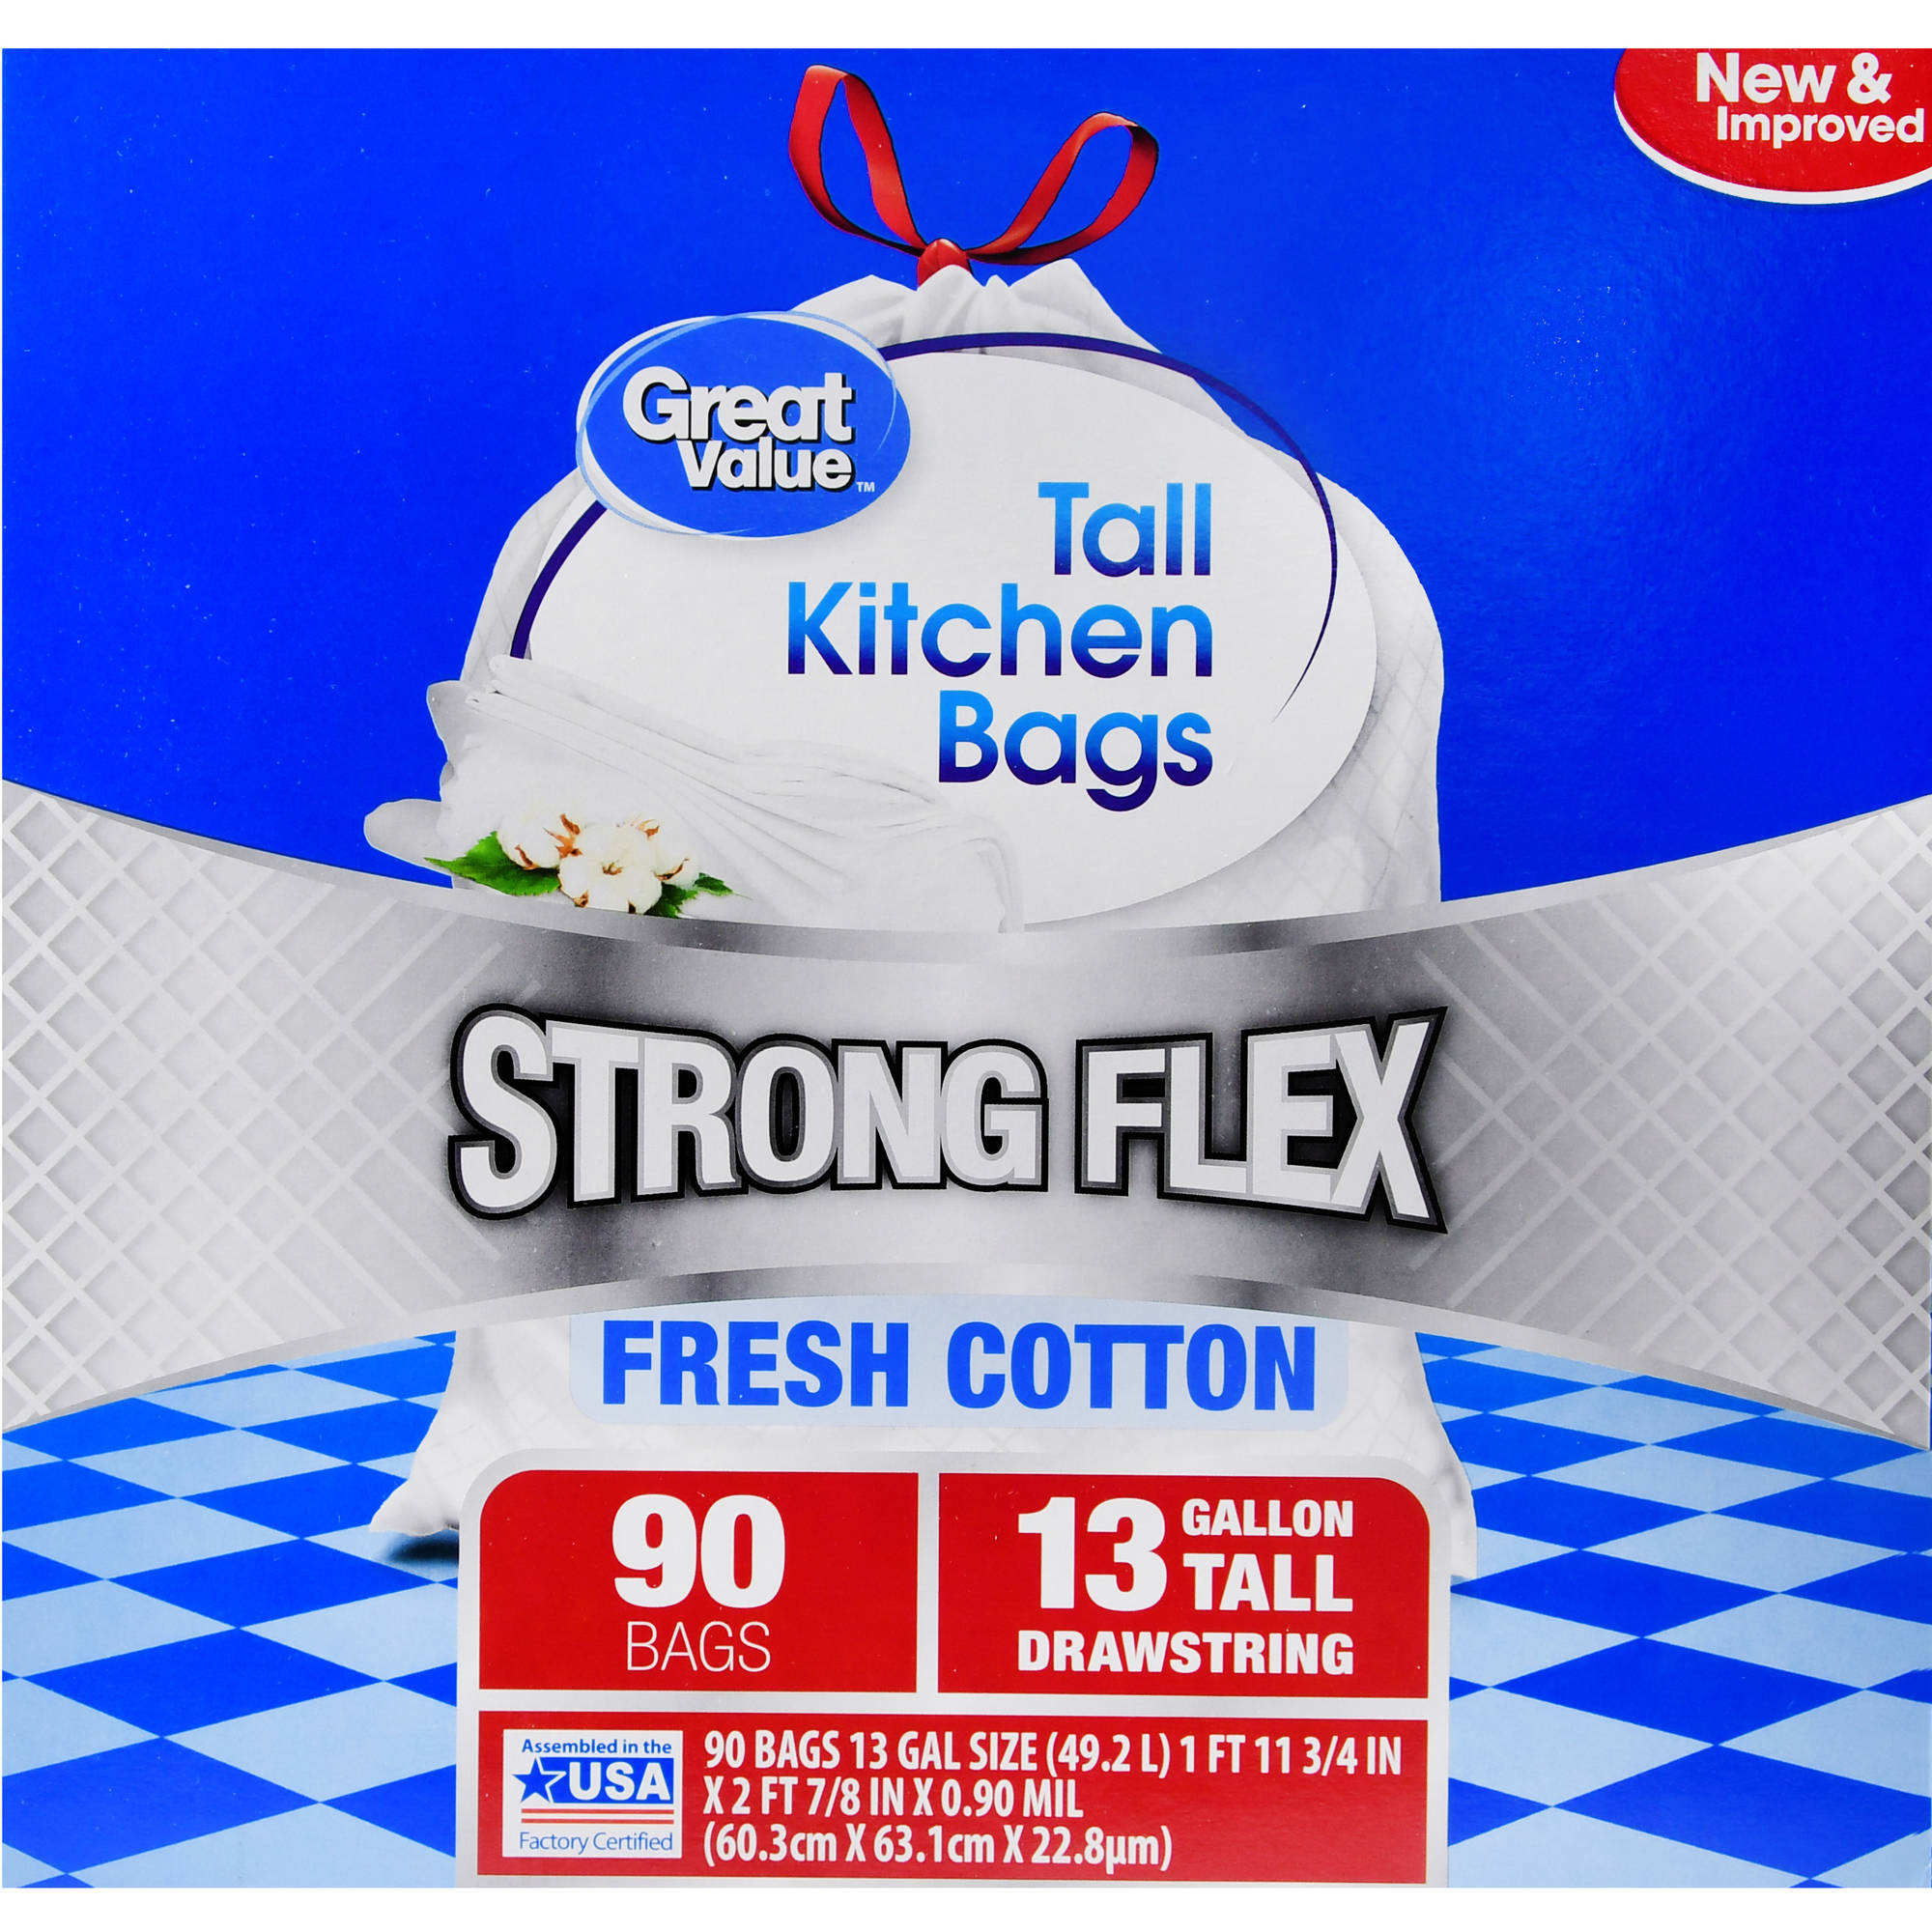 Great Value Strong Flex Tall Kitchen Drawstring Trash Bags, Fresh Cotton, 13 Gallon, 90 Count